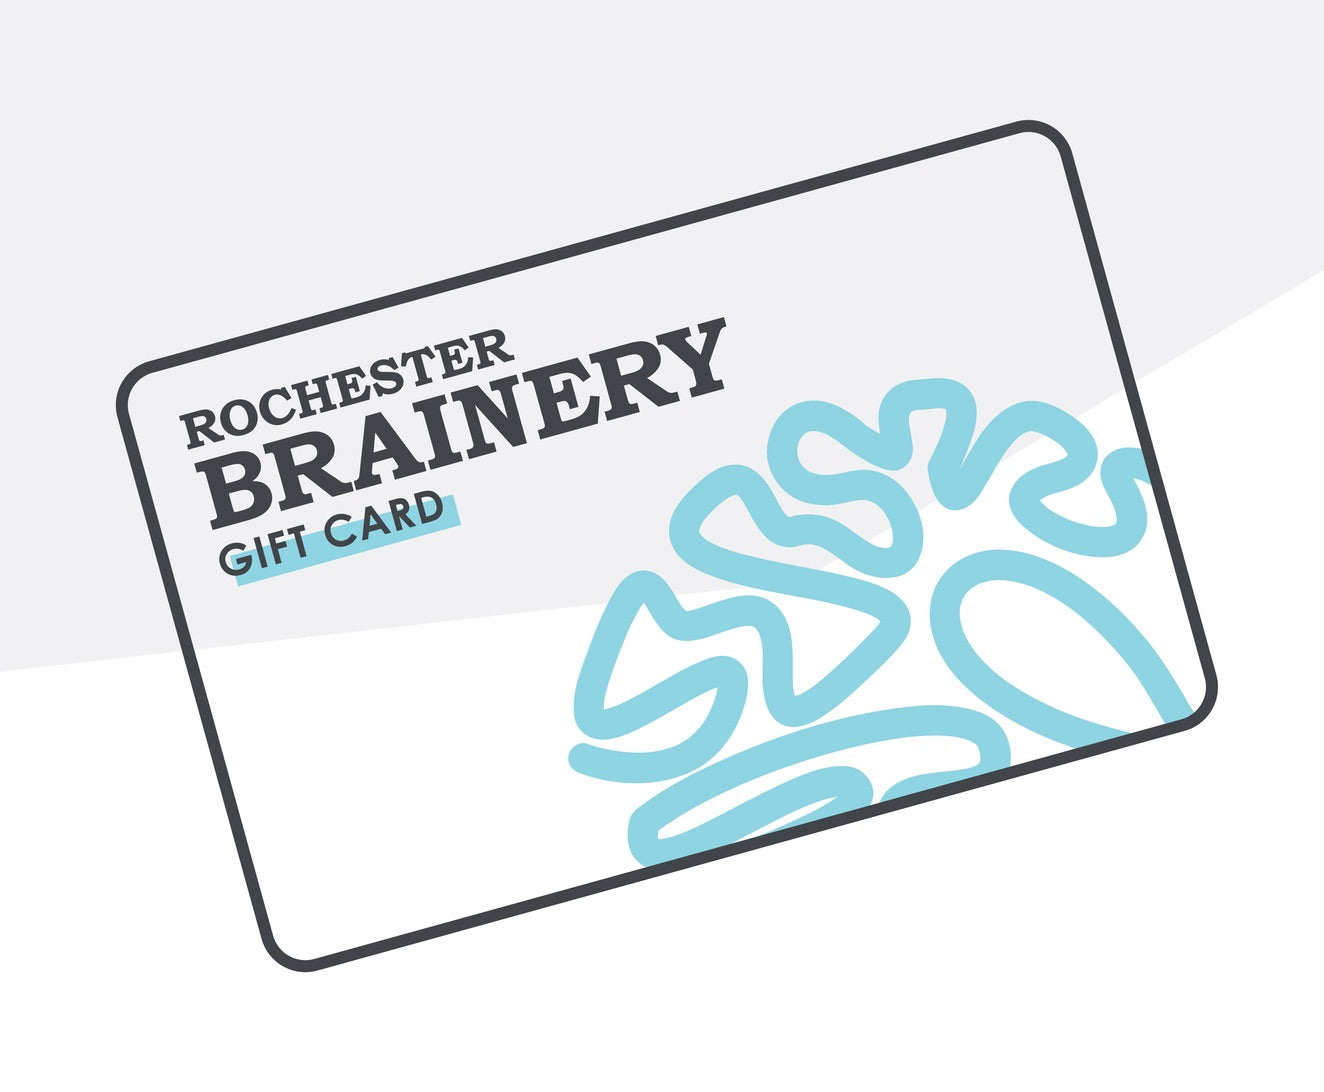 Rochester Brainery Gift Card